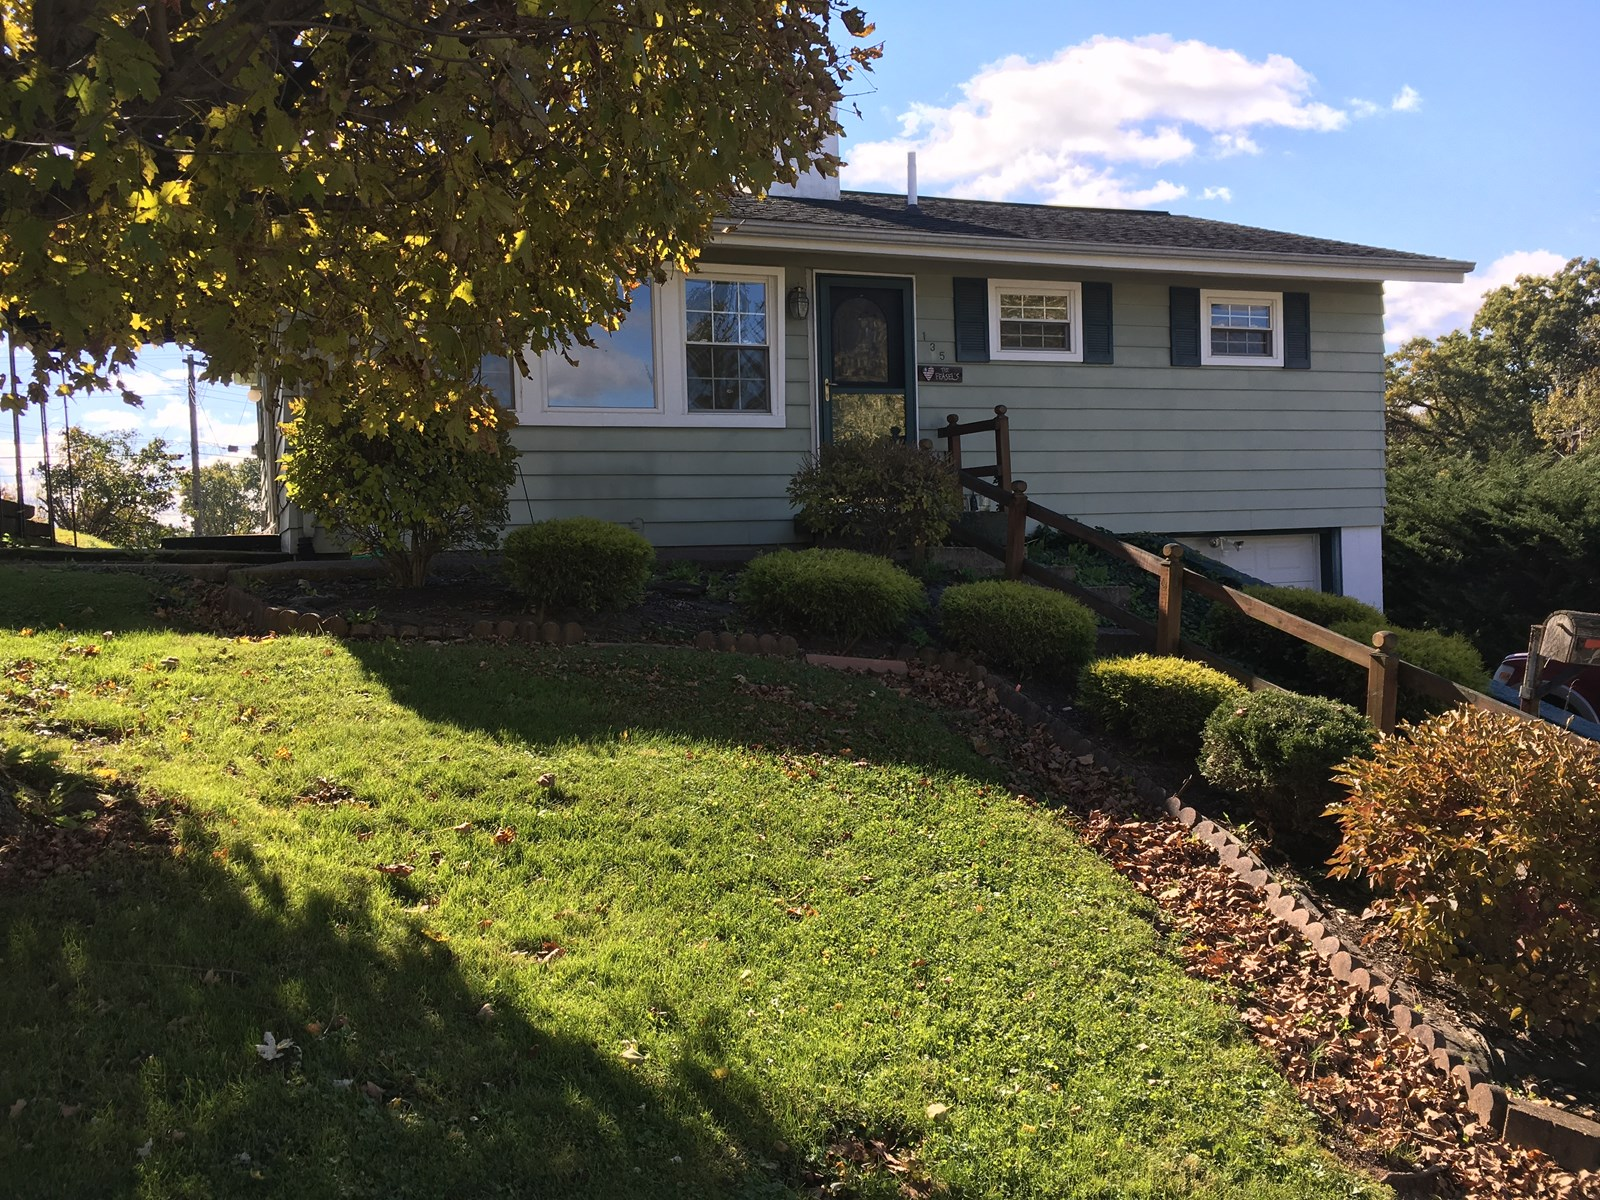 Woodsfield, OH Monroe County, Ranch home on basement